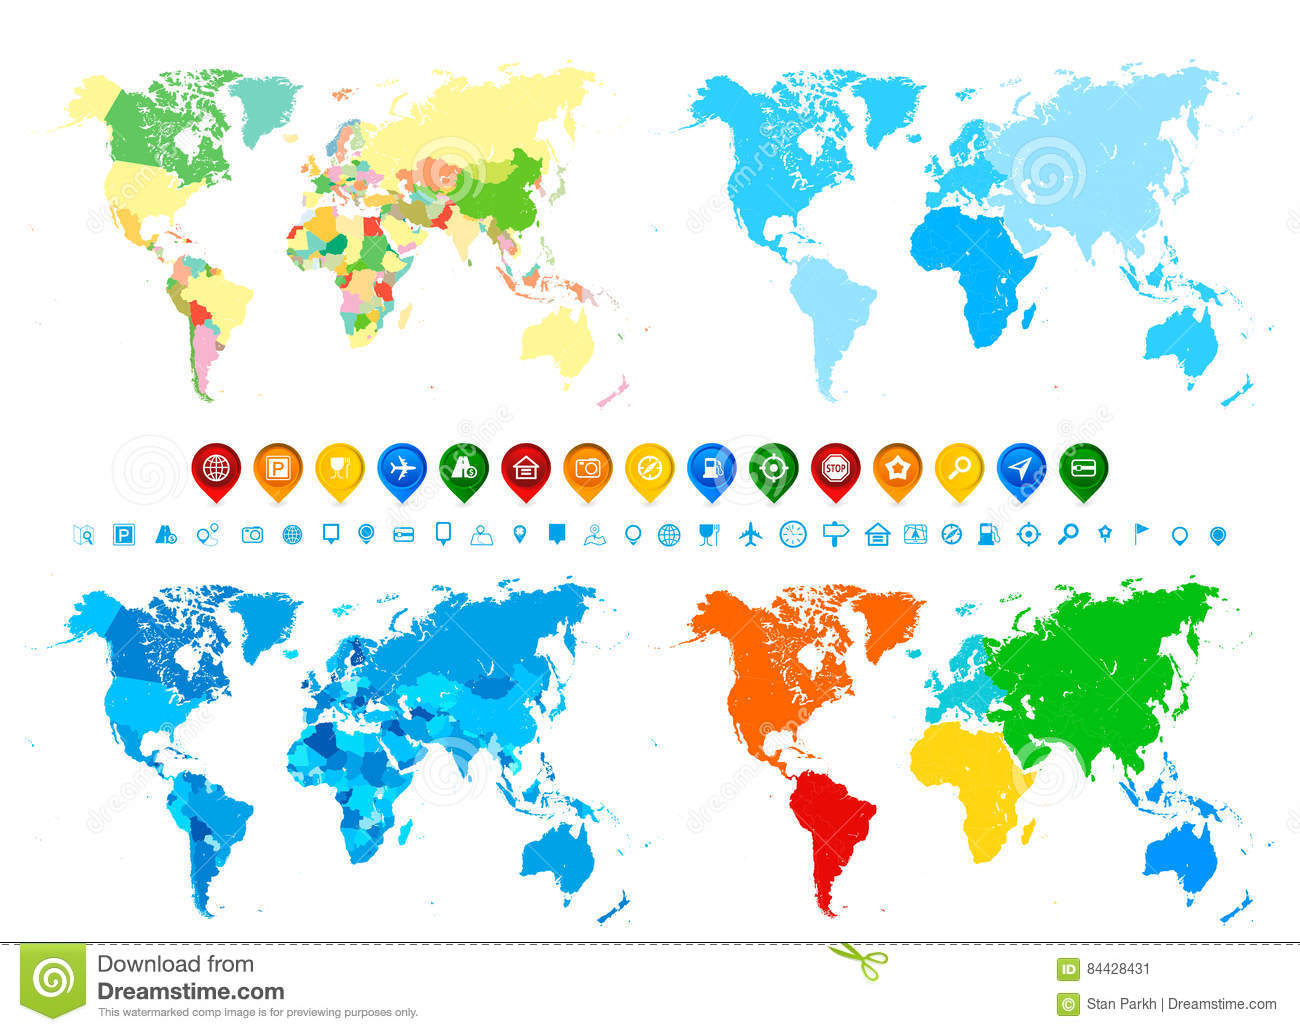 World Map Assignment.World Maps Collection And Navigation Icons In Different Colors A